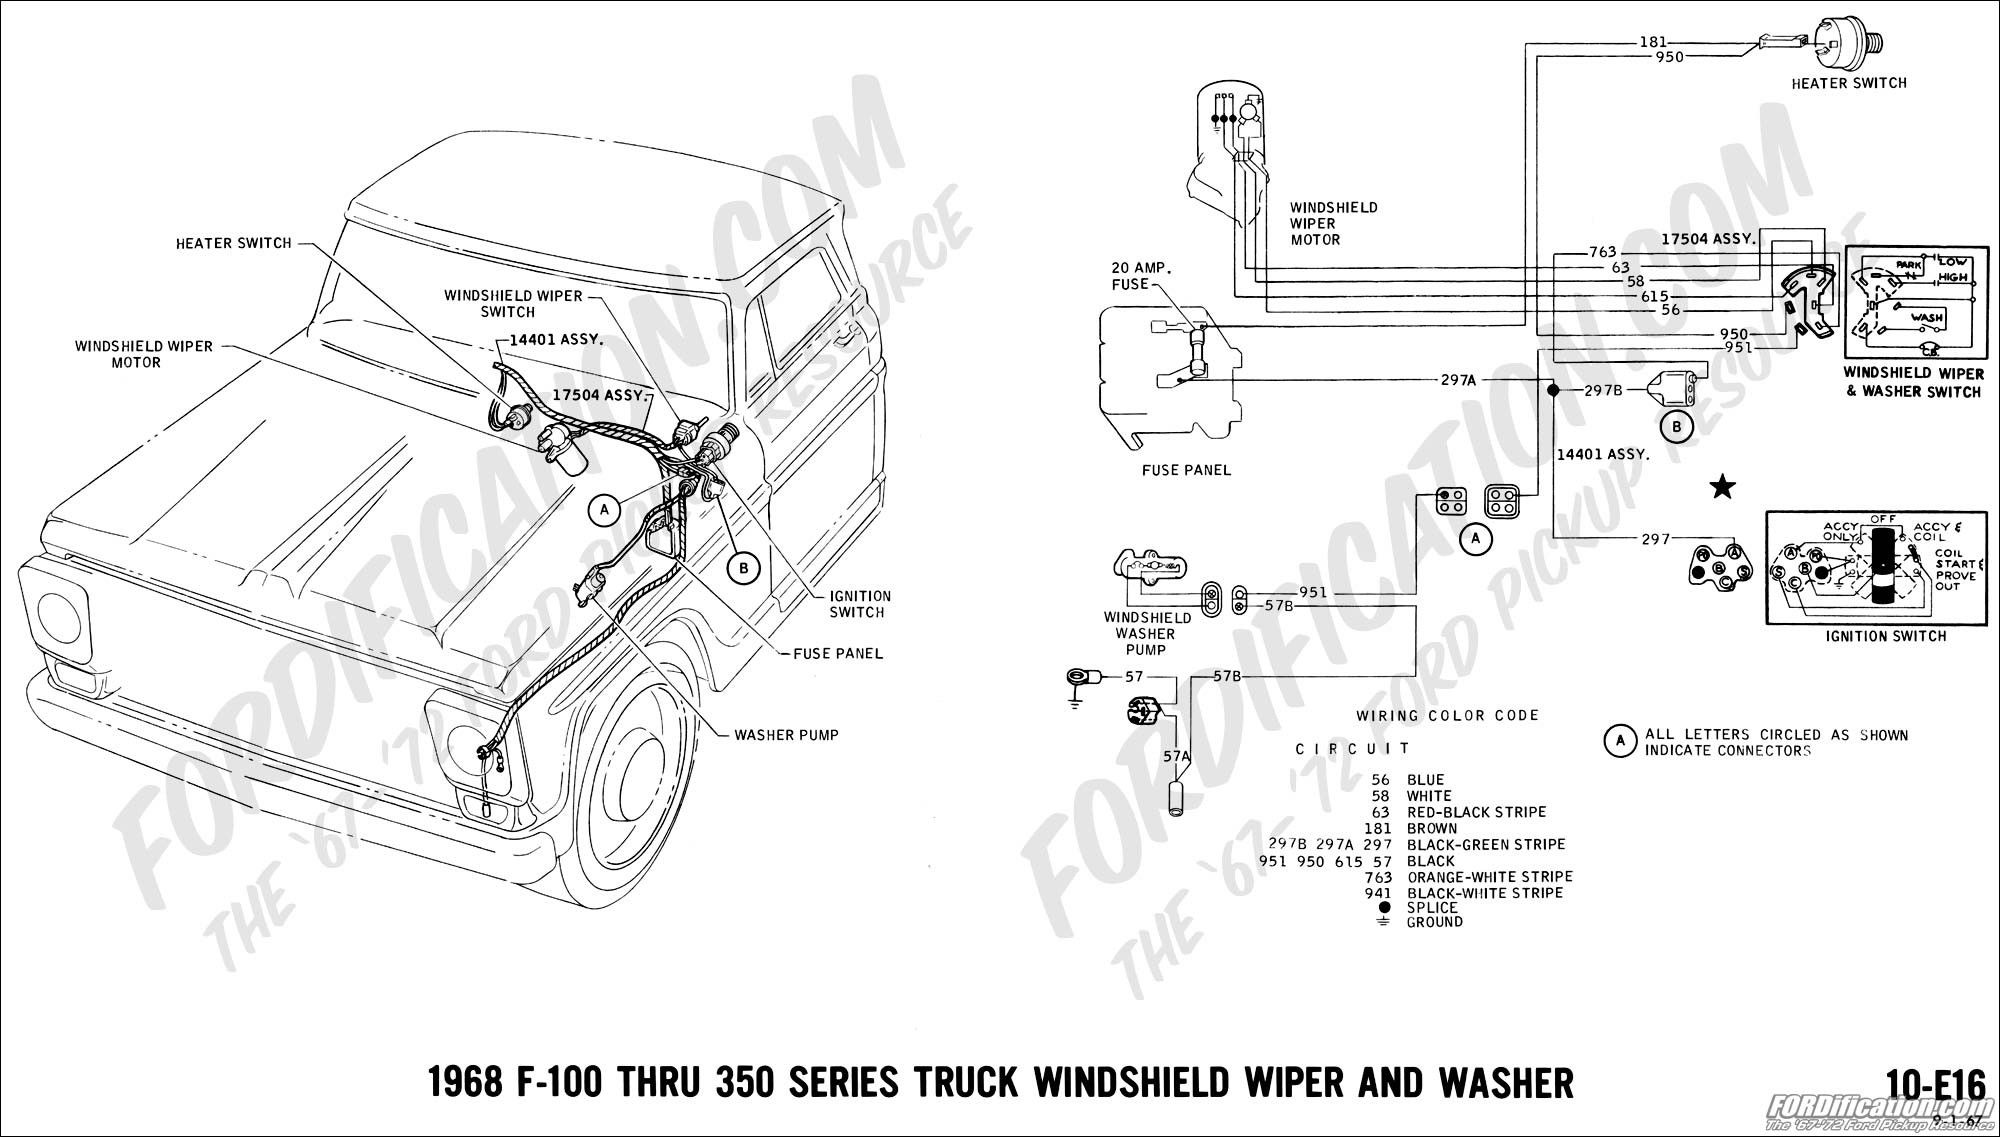 Lovely Alternator Wiring Diagram ford Ranger #diagrams #